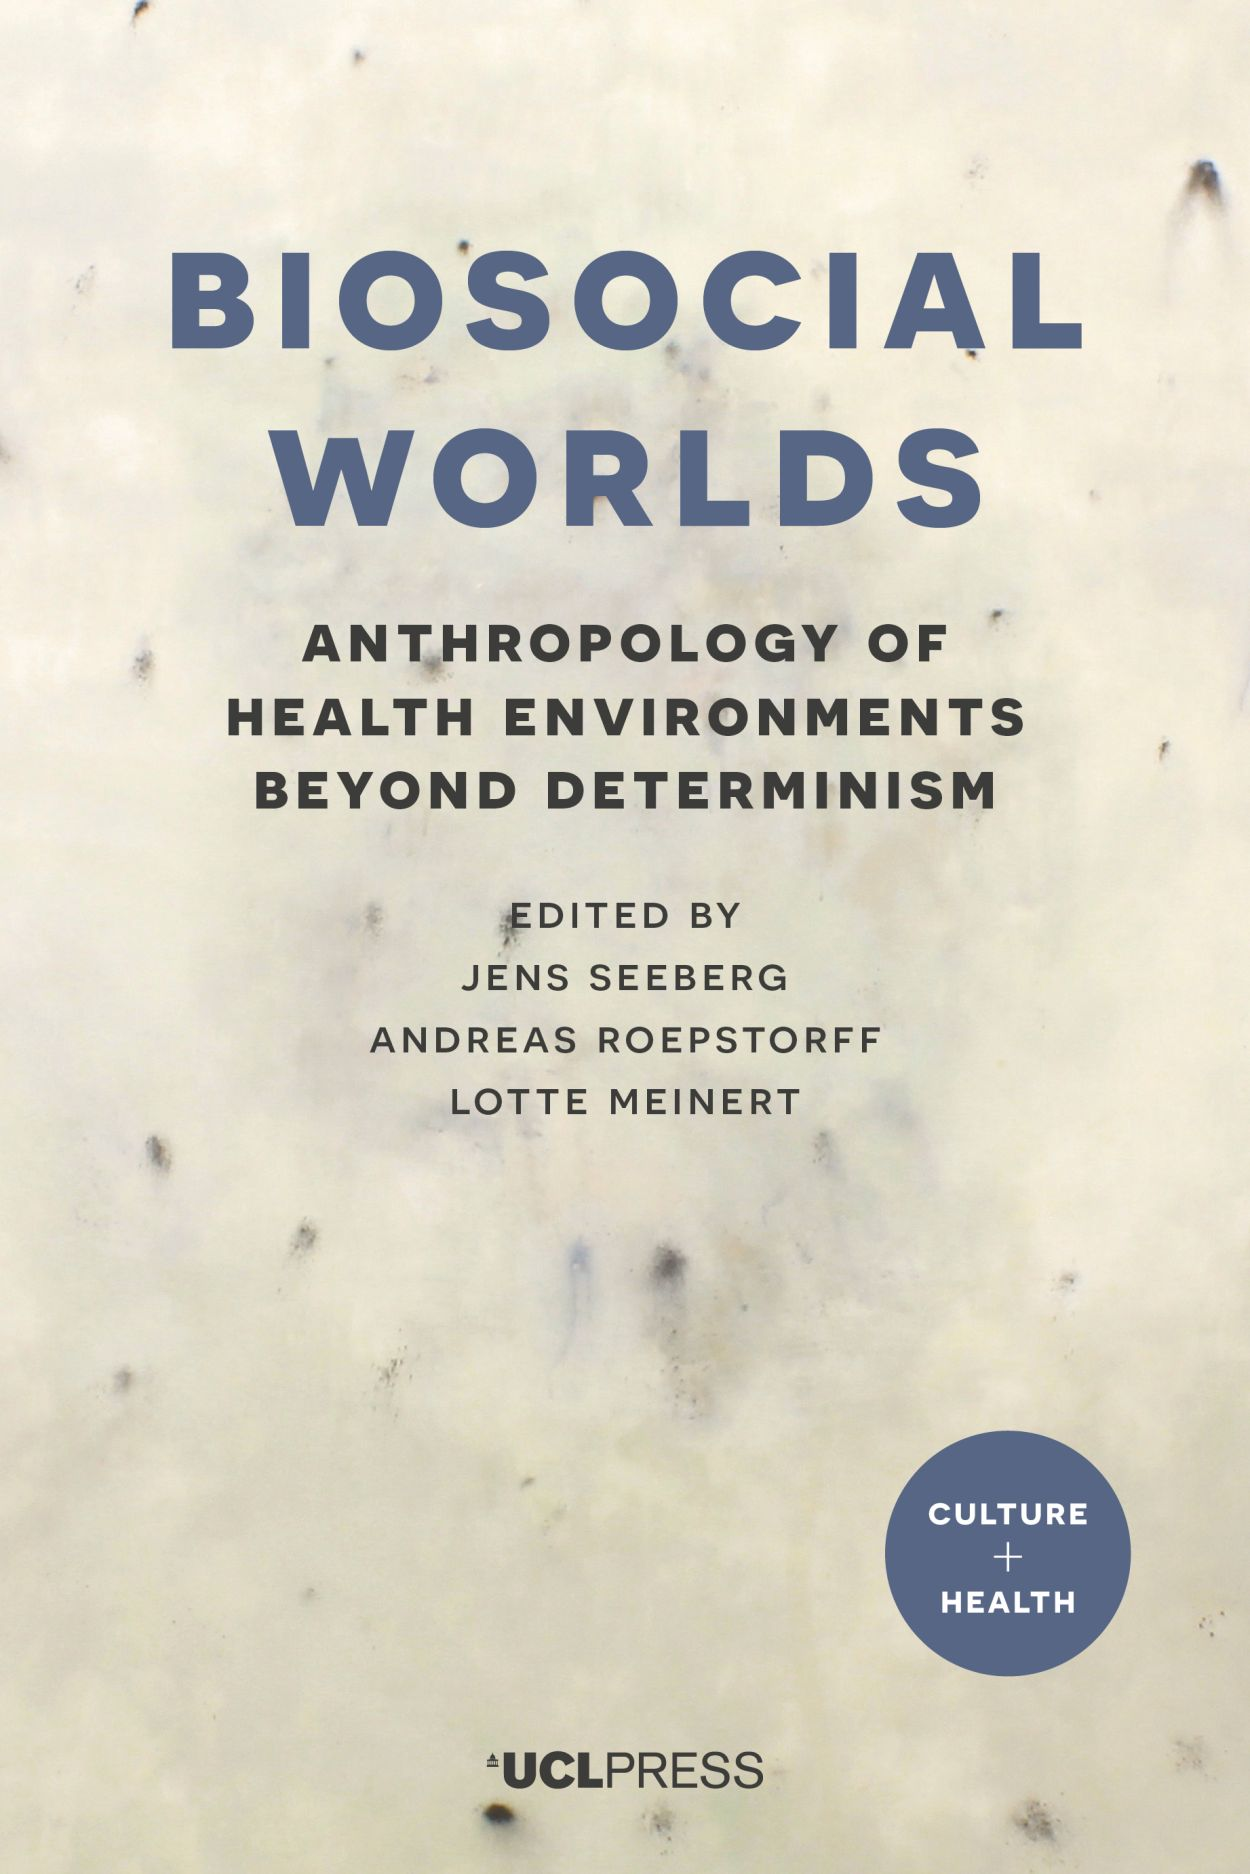 Biosocial Worlds: Anthropology of Health Environments Beyond Determinism